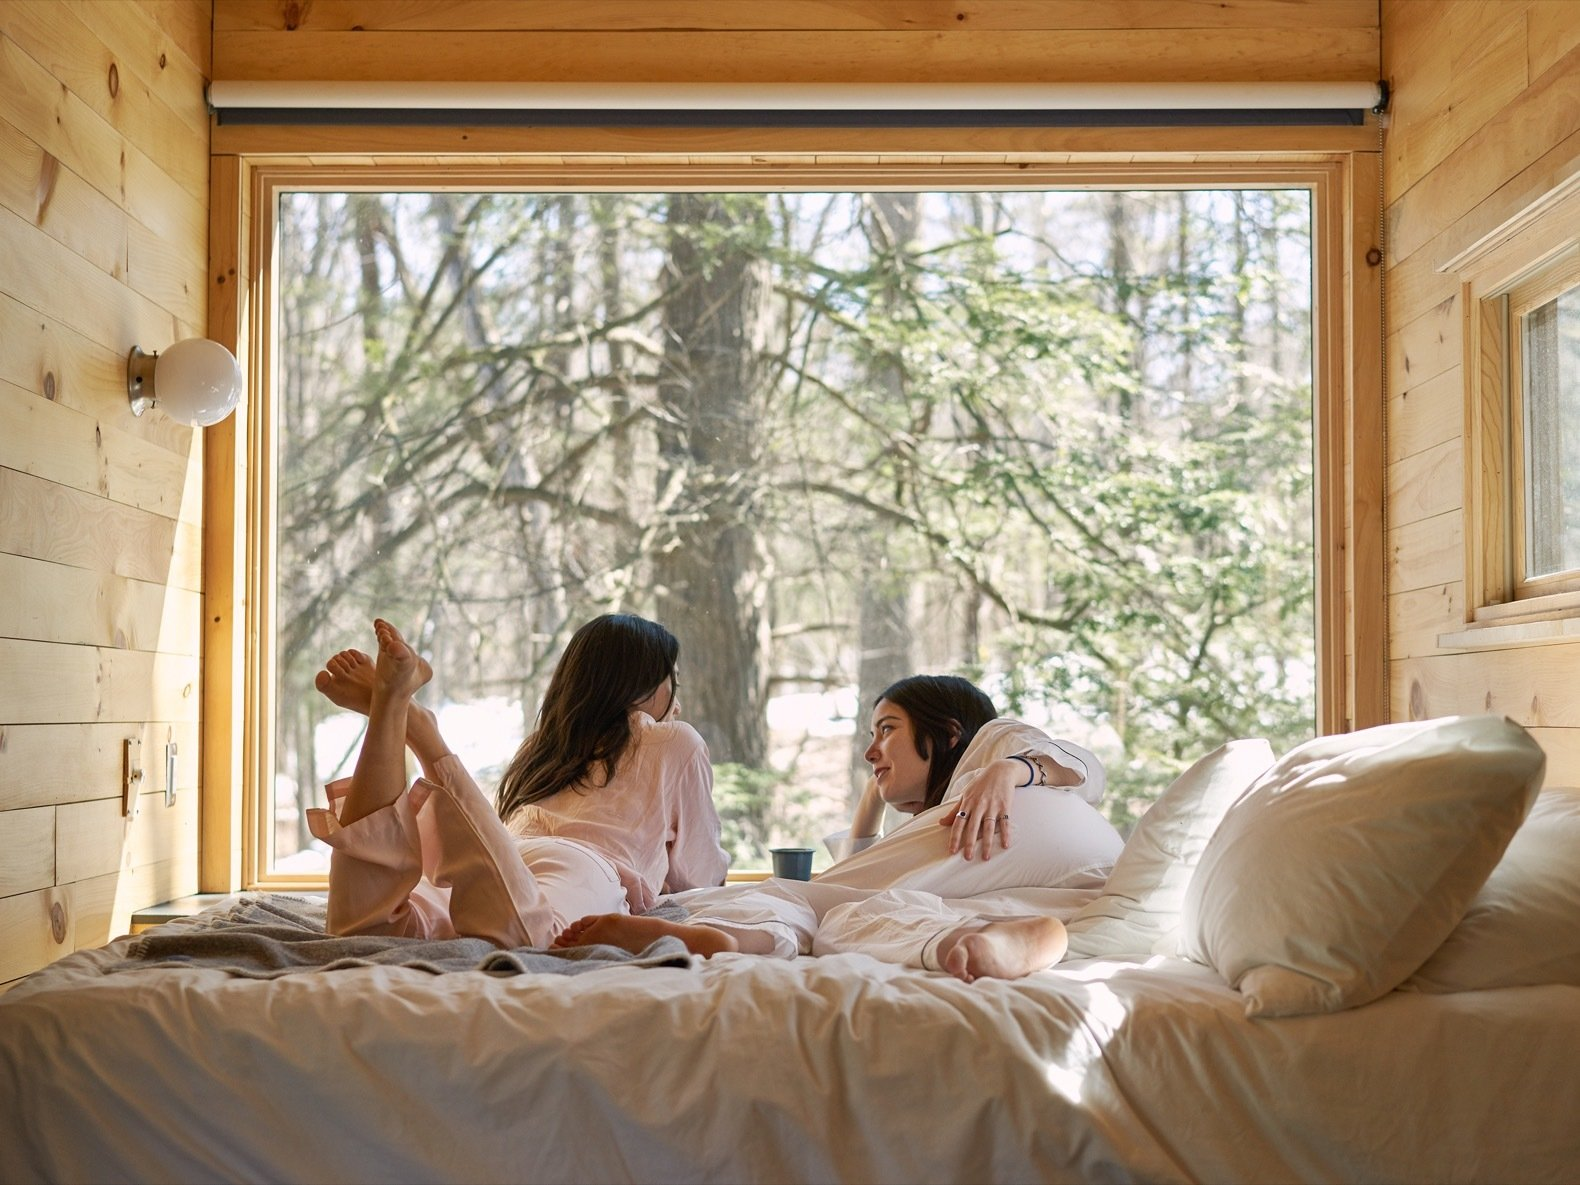 Bedroom, Wall Lighting, Medium Hardwood Floor, and Bed As a digital detox destination, the cabins are WIFI-free and have little-to-no cell service.    Photo 1 of 9 in Rediscover the Pleasure of Solitude in These Micro Cabins Across the East Coast